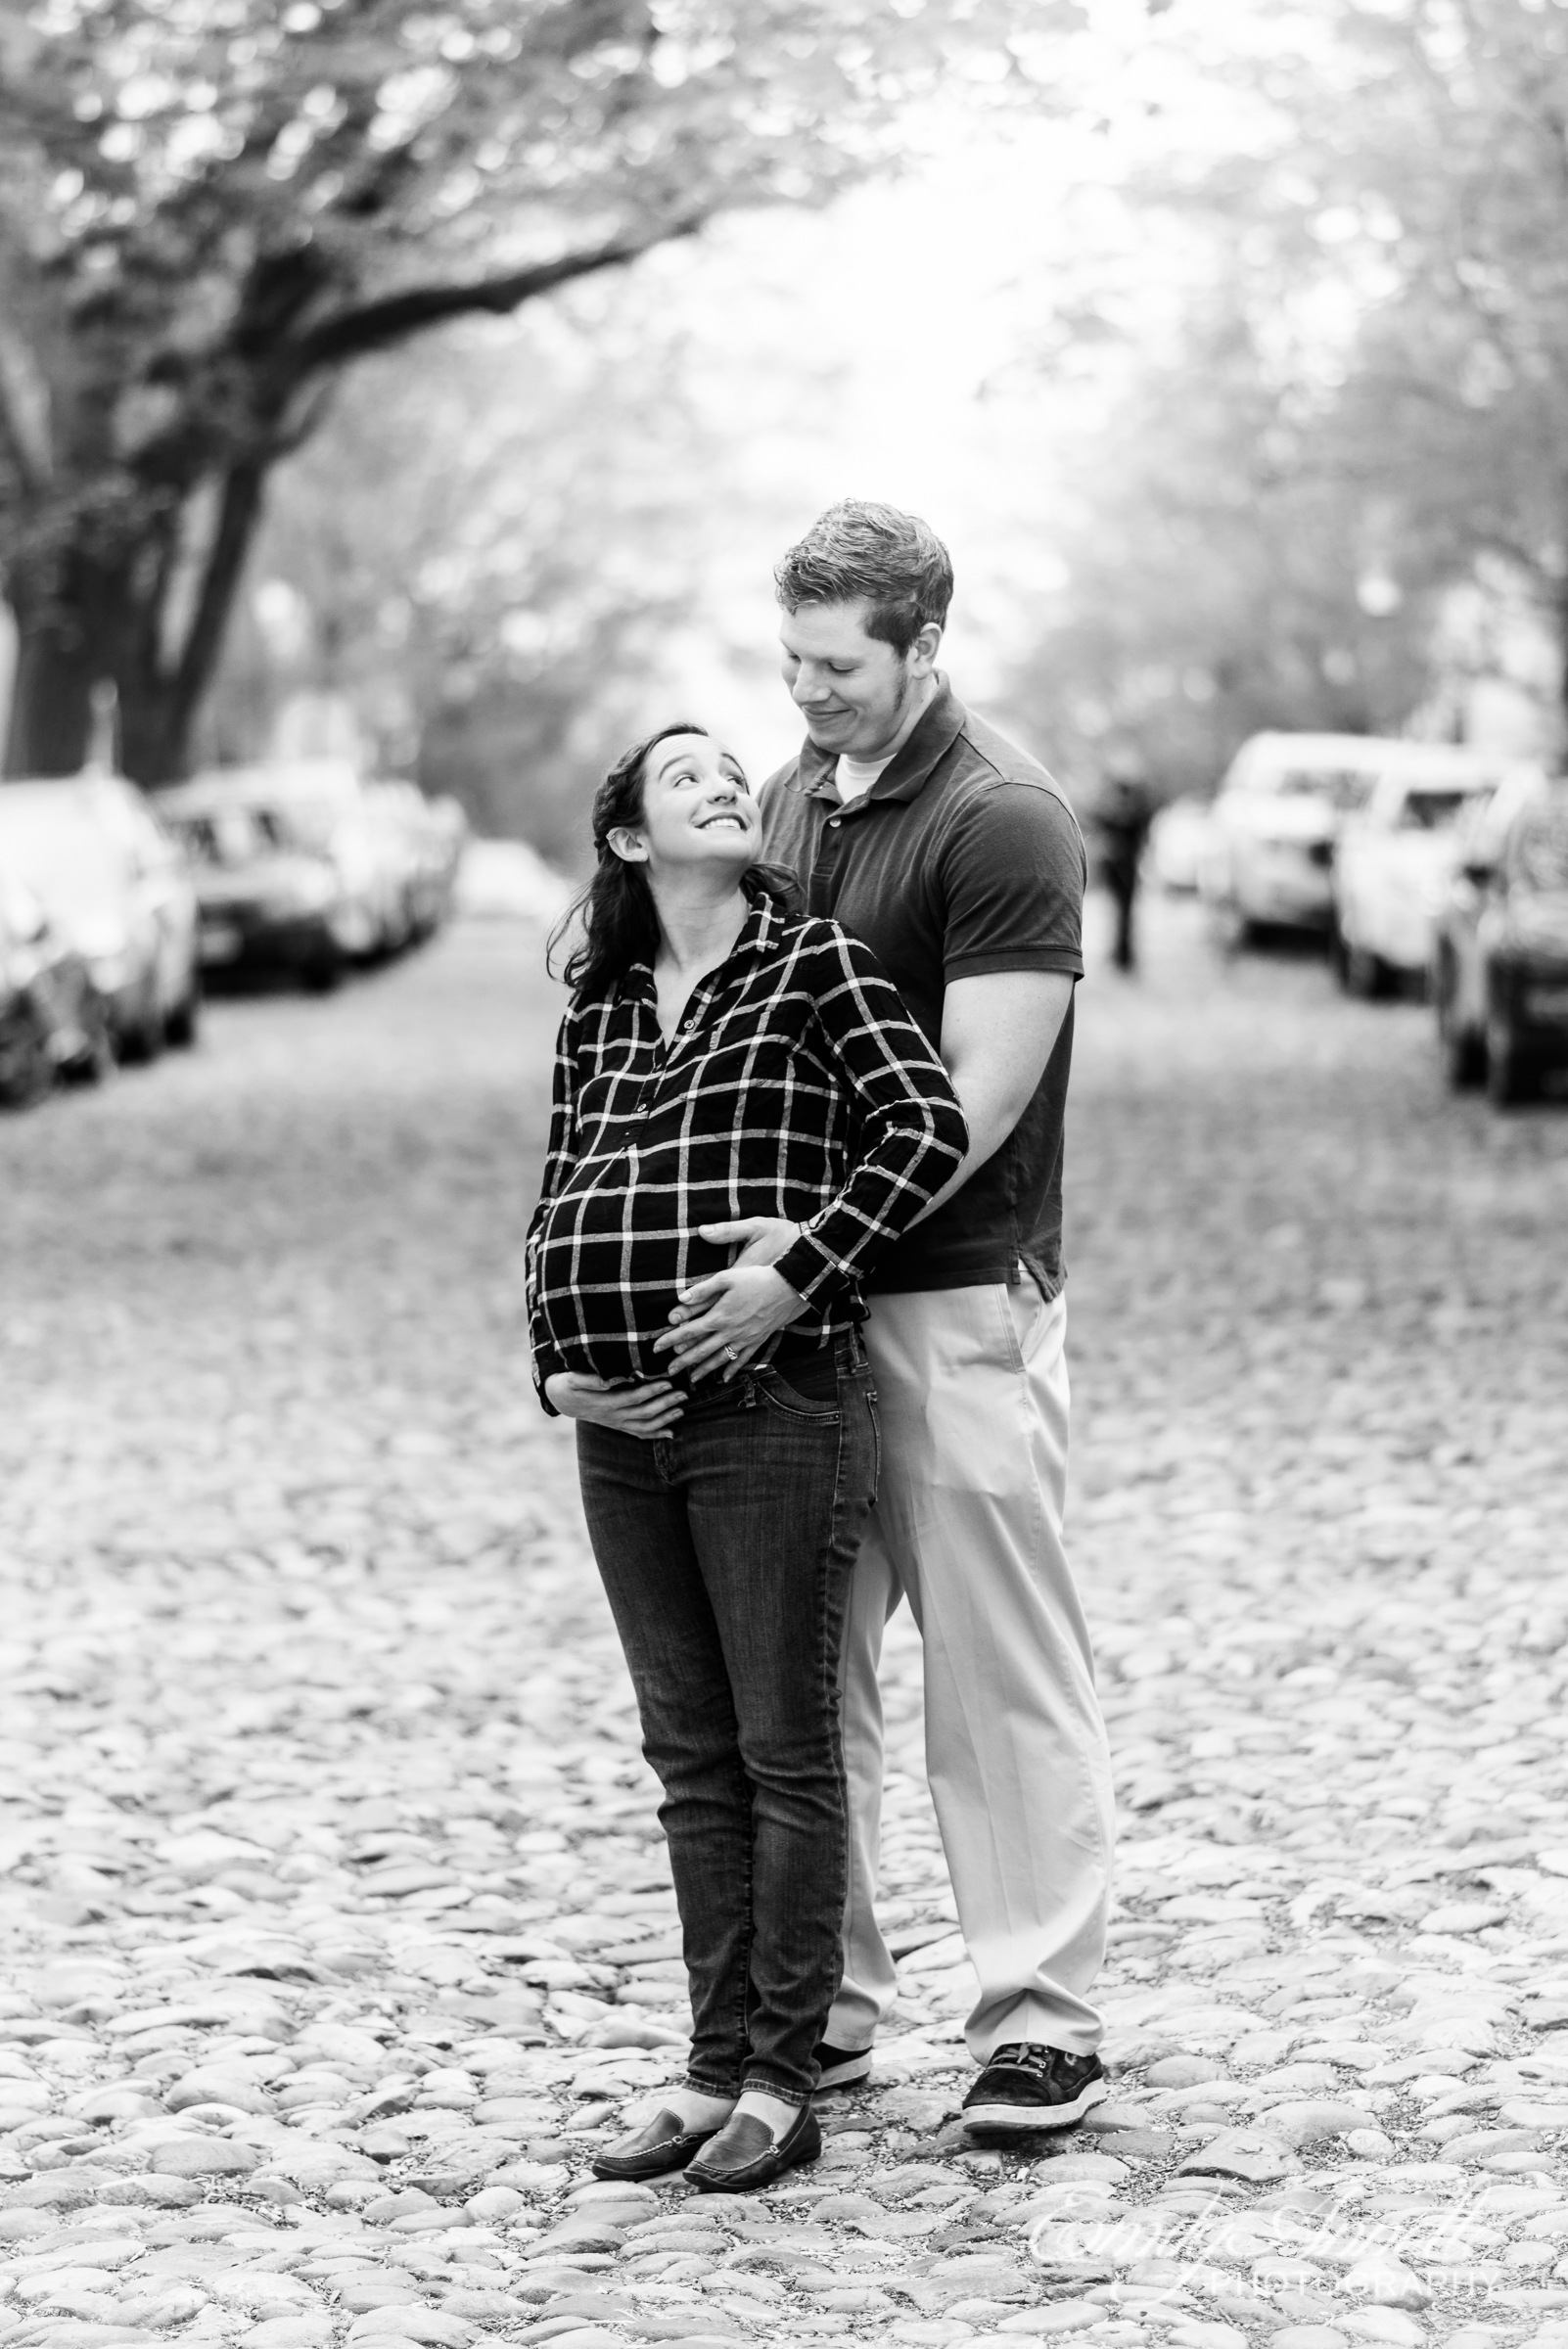 A pregnant woman poses with her husband for modern maternity photos on a cobblestone street in Old Town Alexandria wearing a fun casual shirt and jeans